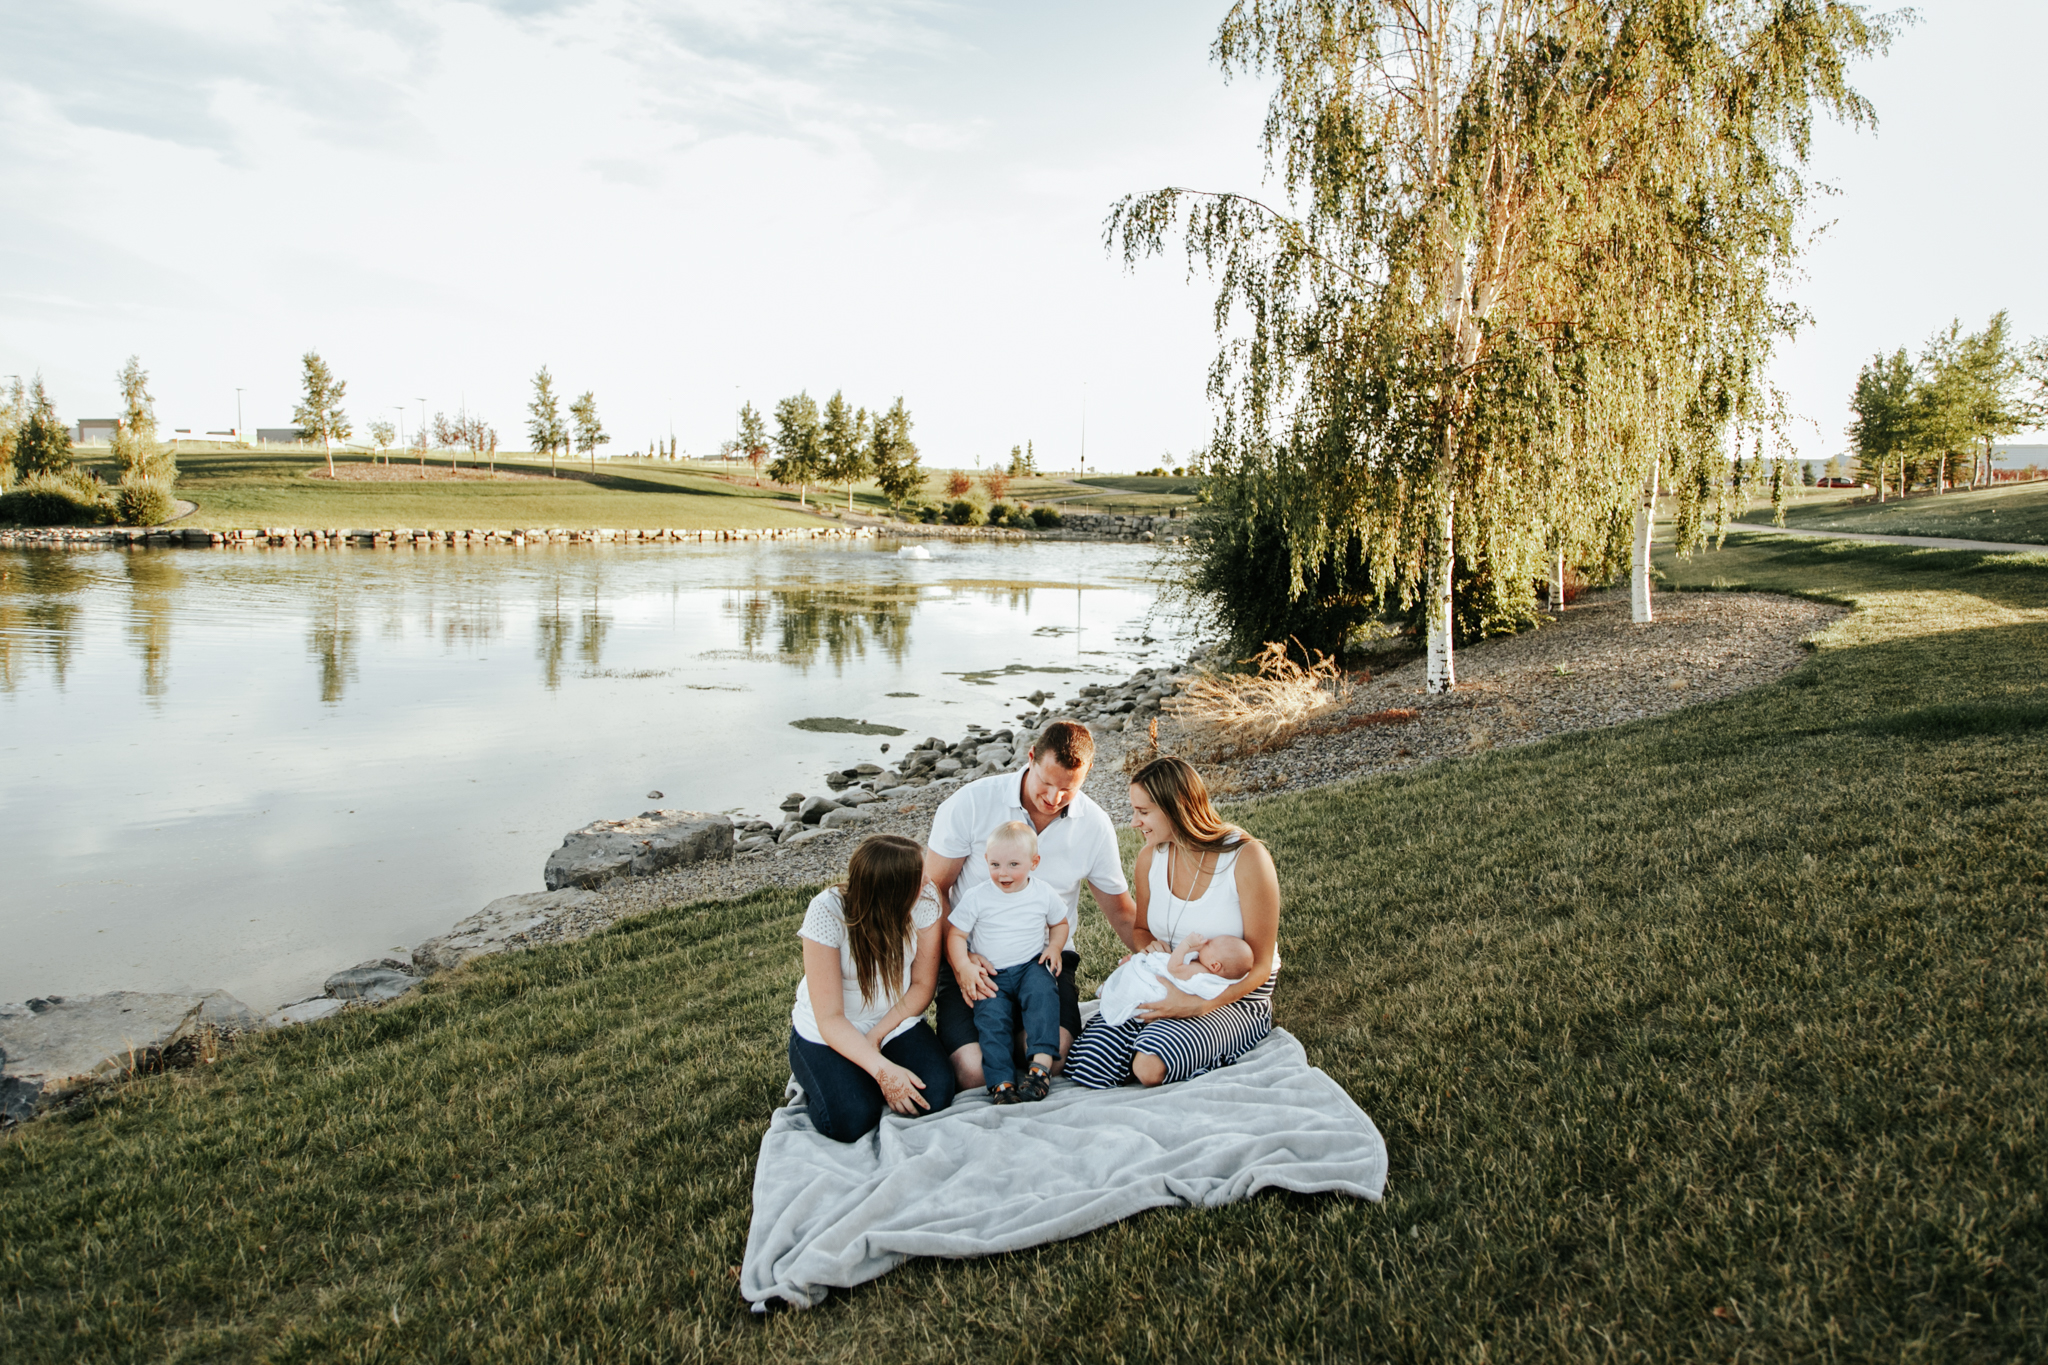 lethbridge-birth-photographer-love-and-be-loved-photography-daxon-newborn-picture-image-photo-48.jpg